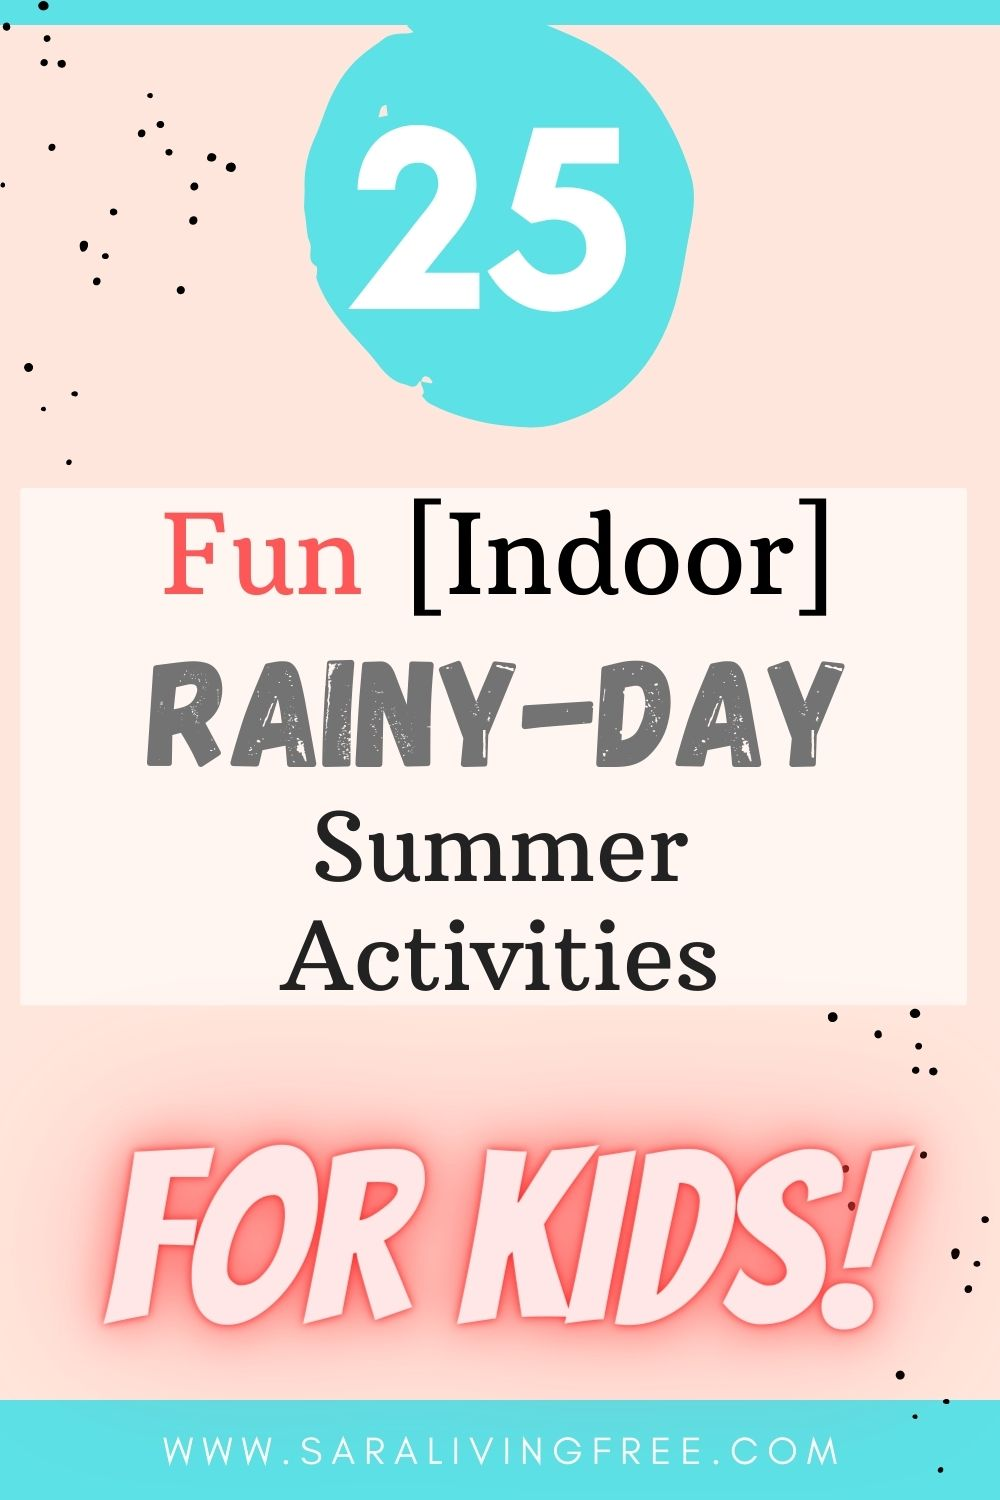 25 fun indoor rainy day summer activities for the family